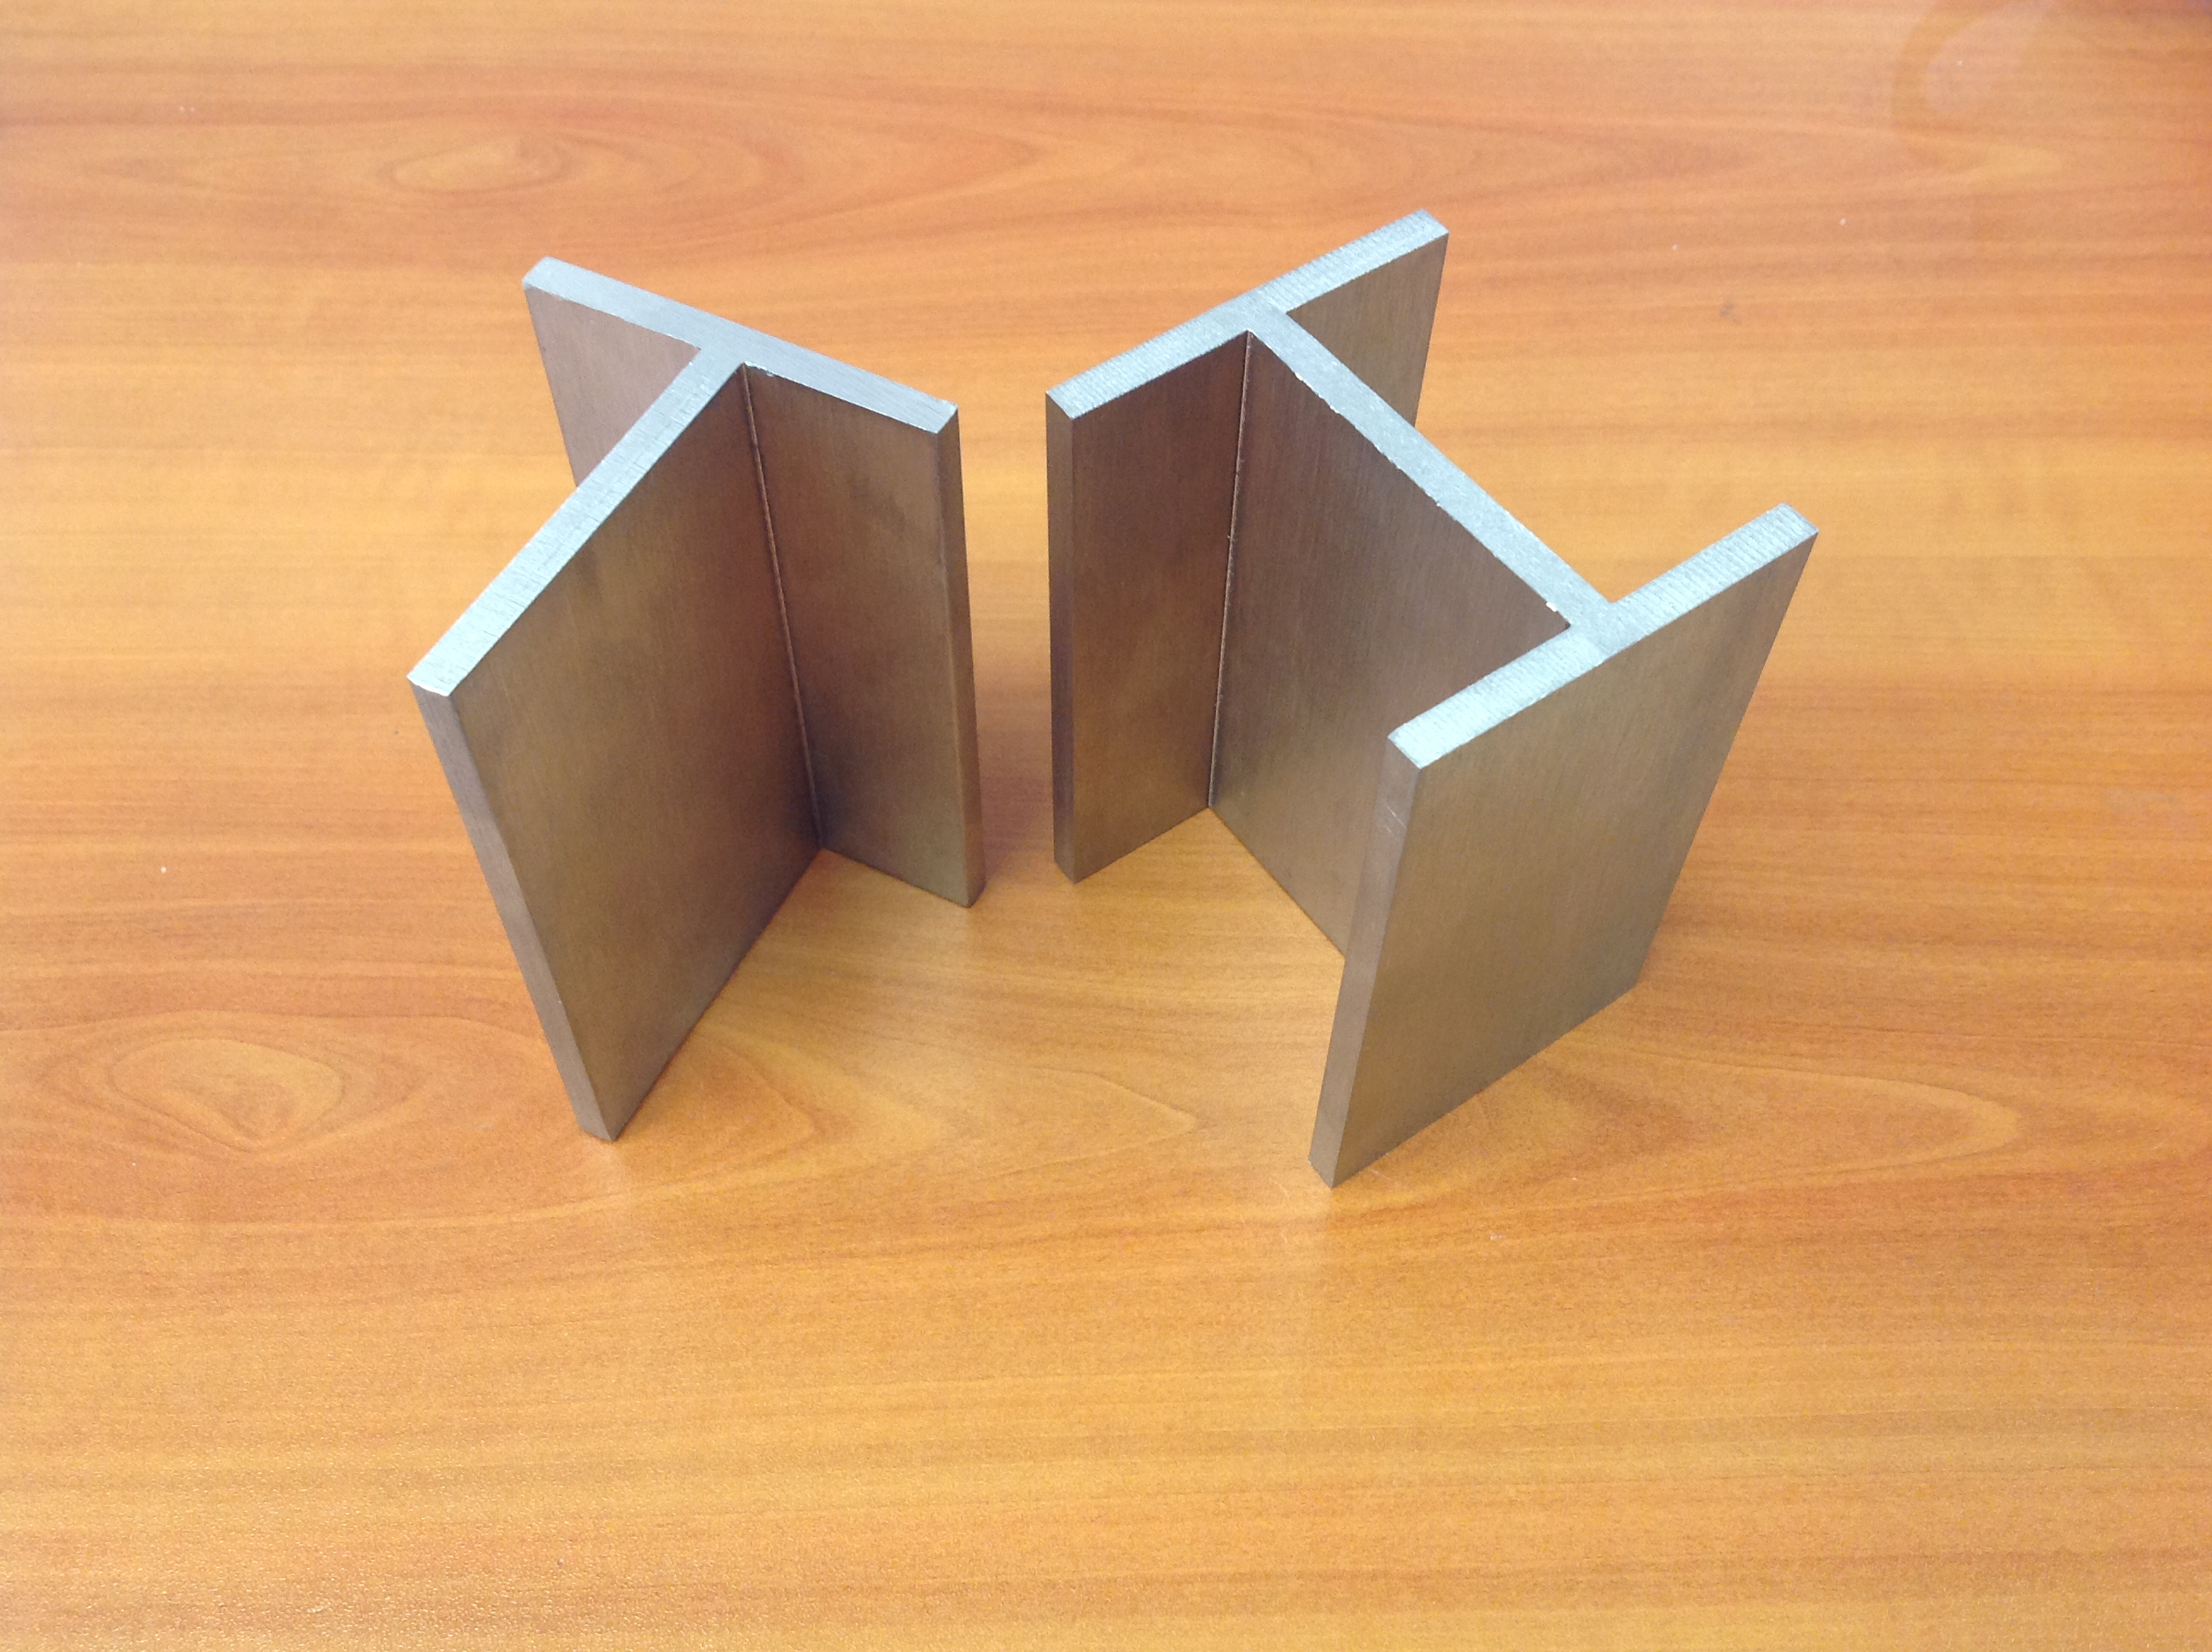 Laser Welded - stainless steel profiles